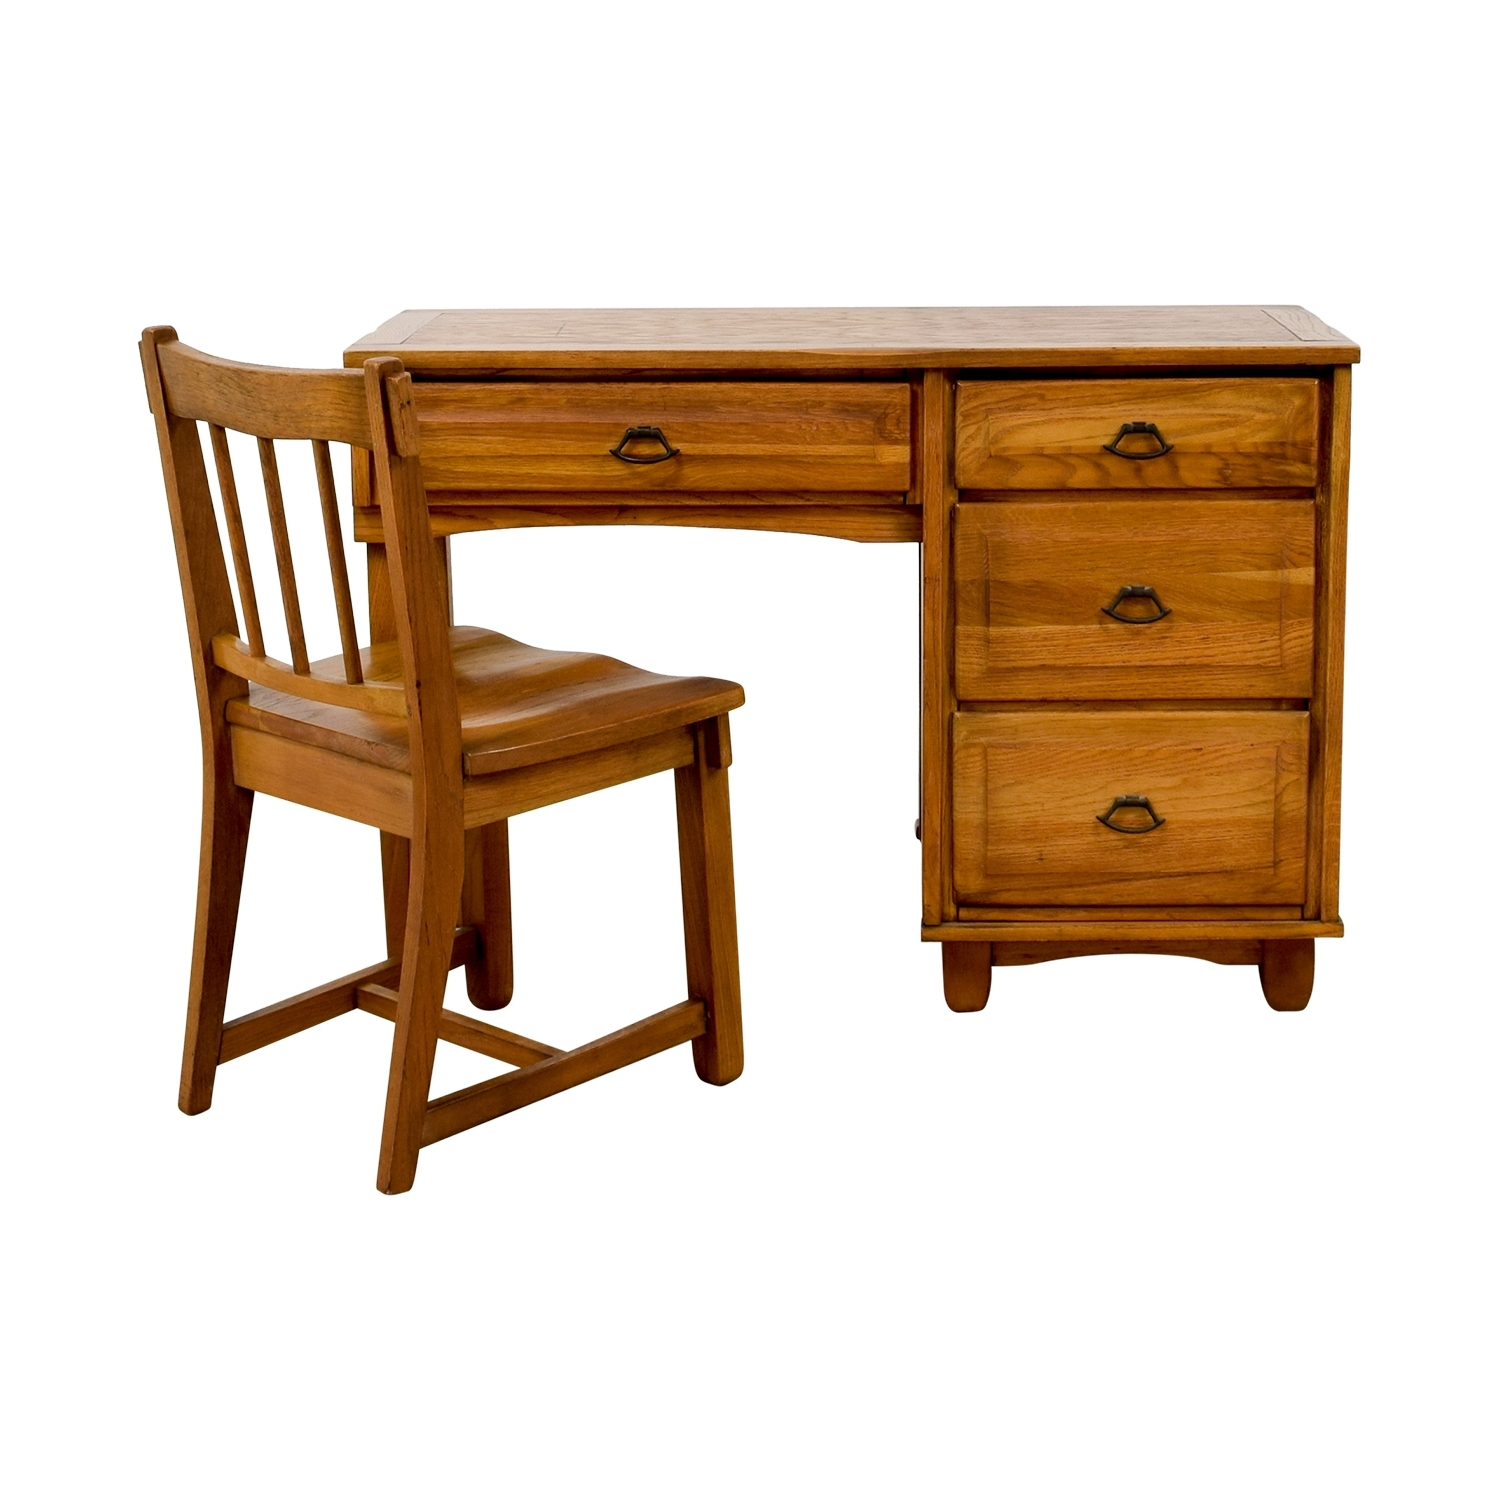 [%86% Off – Vintage Oak Desk With Chair / Tables Pertaining To Most Recently Released Vintage Computer Desks|Vintage Computer Desks Inside Famous 86% Off – Vintage Oak Desk With Chair / Tables|Fashionable Vintage Computer Desks Throughout 86% Off – Vintage Oak Desk With Chair / Tables|Well Liked 86% Off – Vintage Oak Desk With Chair / Tables Regarding Vintage Computer Desks%] (View 1 of 20)